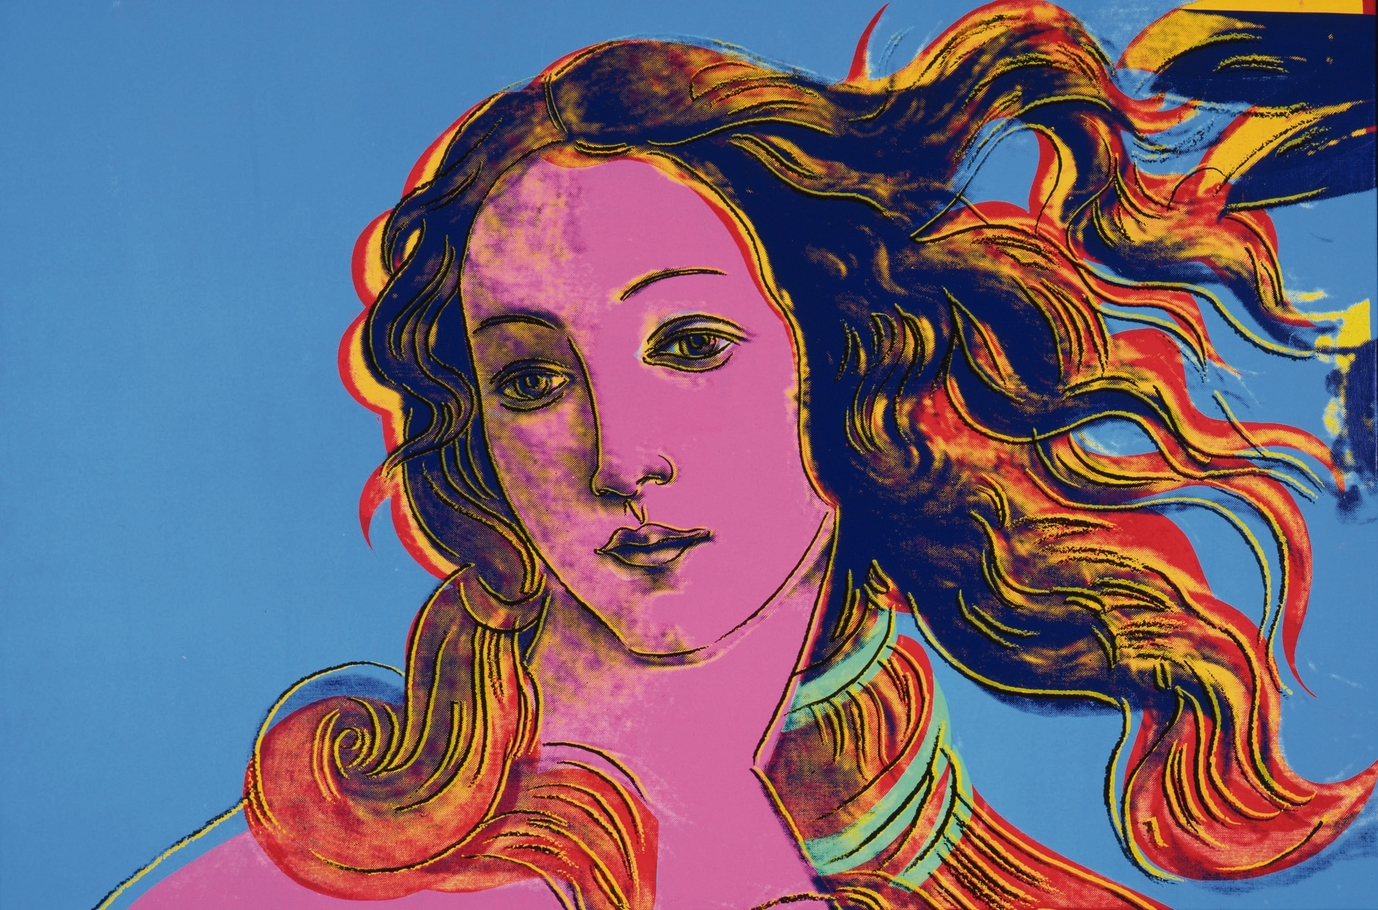 Andy Warhol, Details of Renaissance Paintings (Sandro Botticelli, Birth of Venuse, 1482), 1984